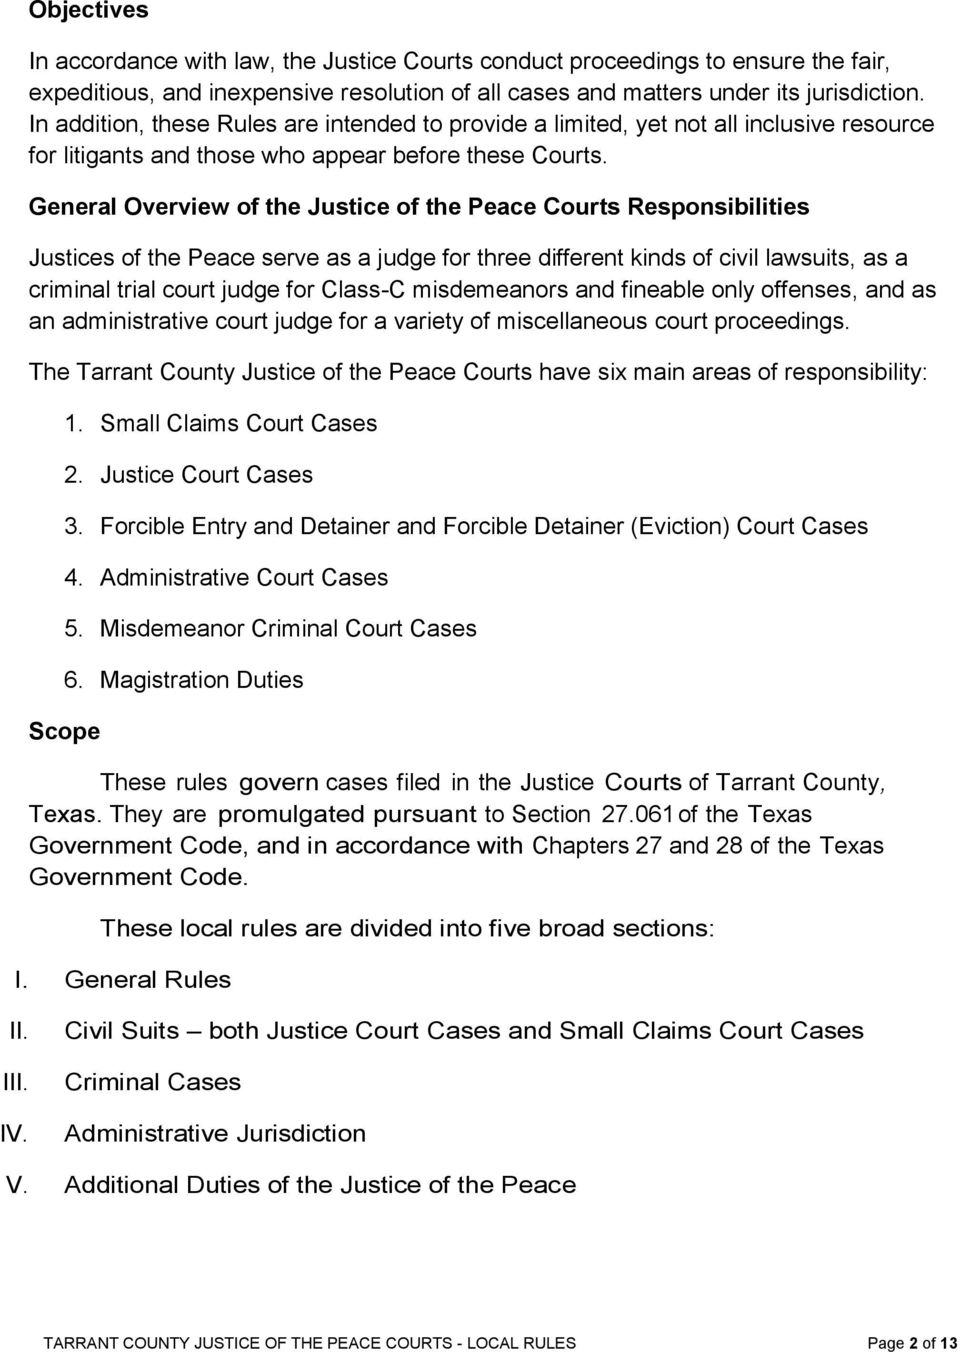 General Overview of the Justice of the Peace Courts Responsibilities Justices of the Peace serve as a judge for three different kinds of civil lawsuits, as a criminal trial court judge for Class-C